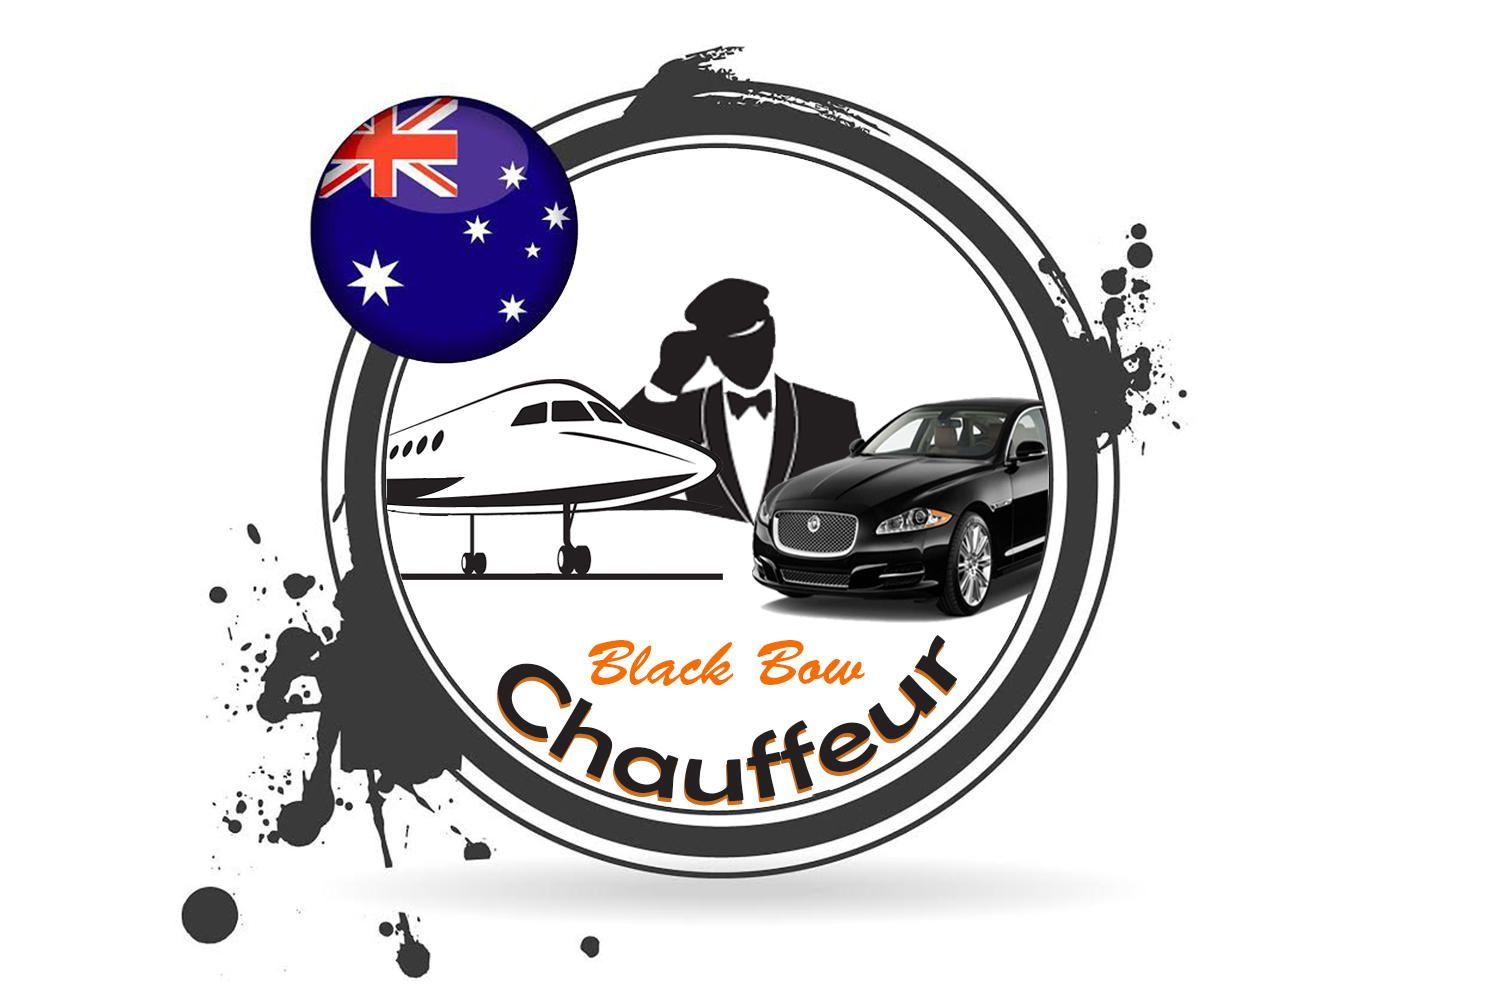 Why Choose Black Bow Chauffeur for your Airport Transfers